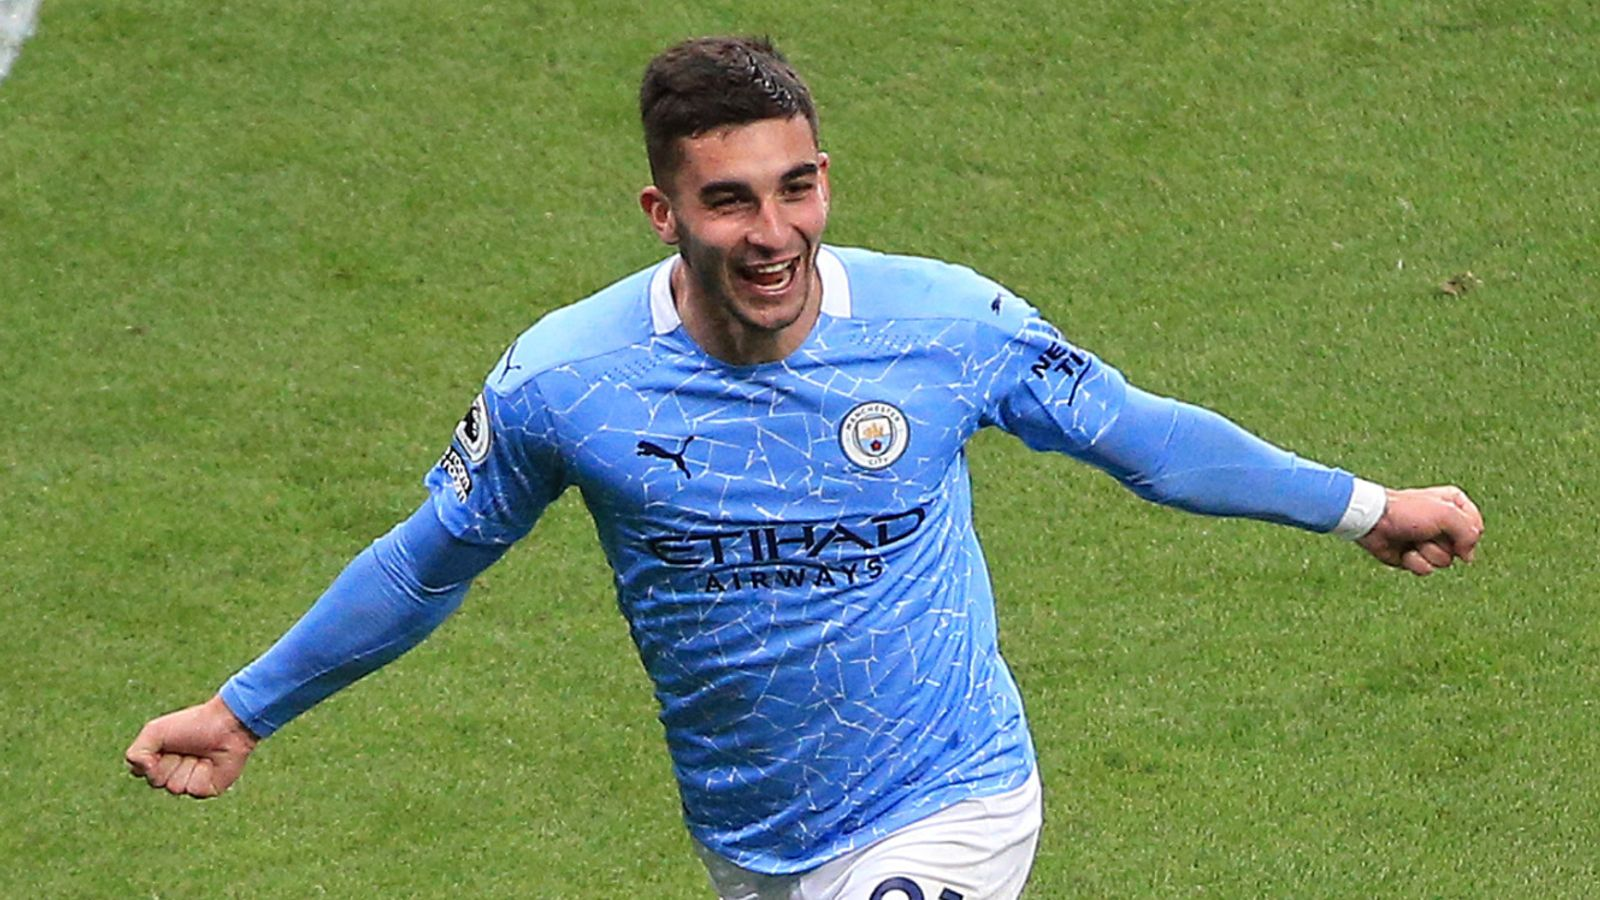 Newcastle 3-4 Man City: Ferran Torres hat-trick helps newly-crowned Premier League champions to victory